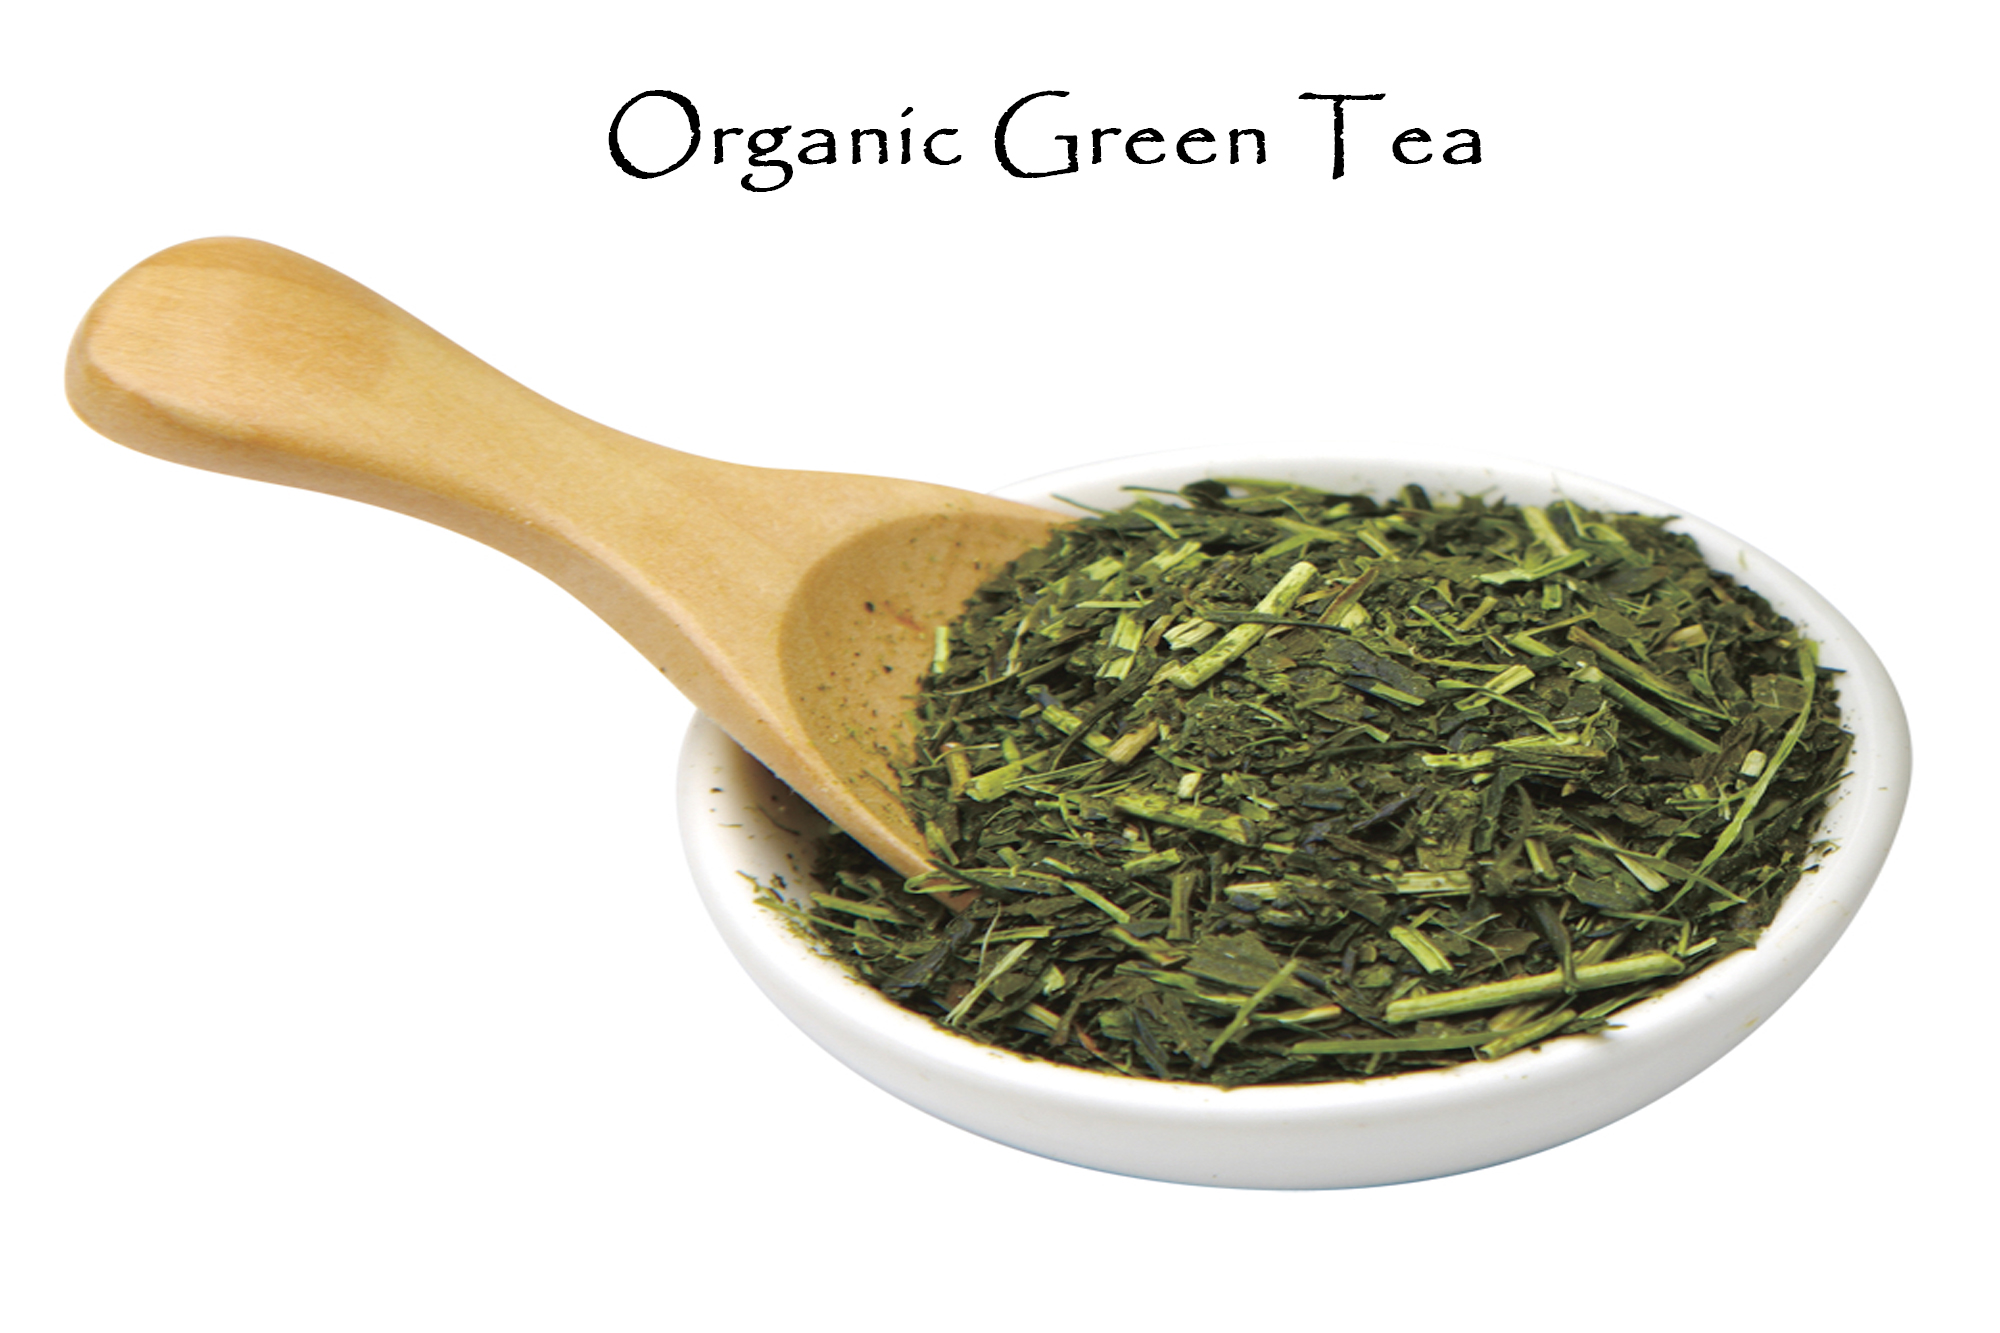 Green Tea is a powerful topical antioxidant that calms sensitive/reactive skin , promotes skin cell regeneration , and  fights free radical damage which is vital to keeping skin looking young.